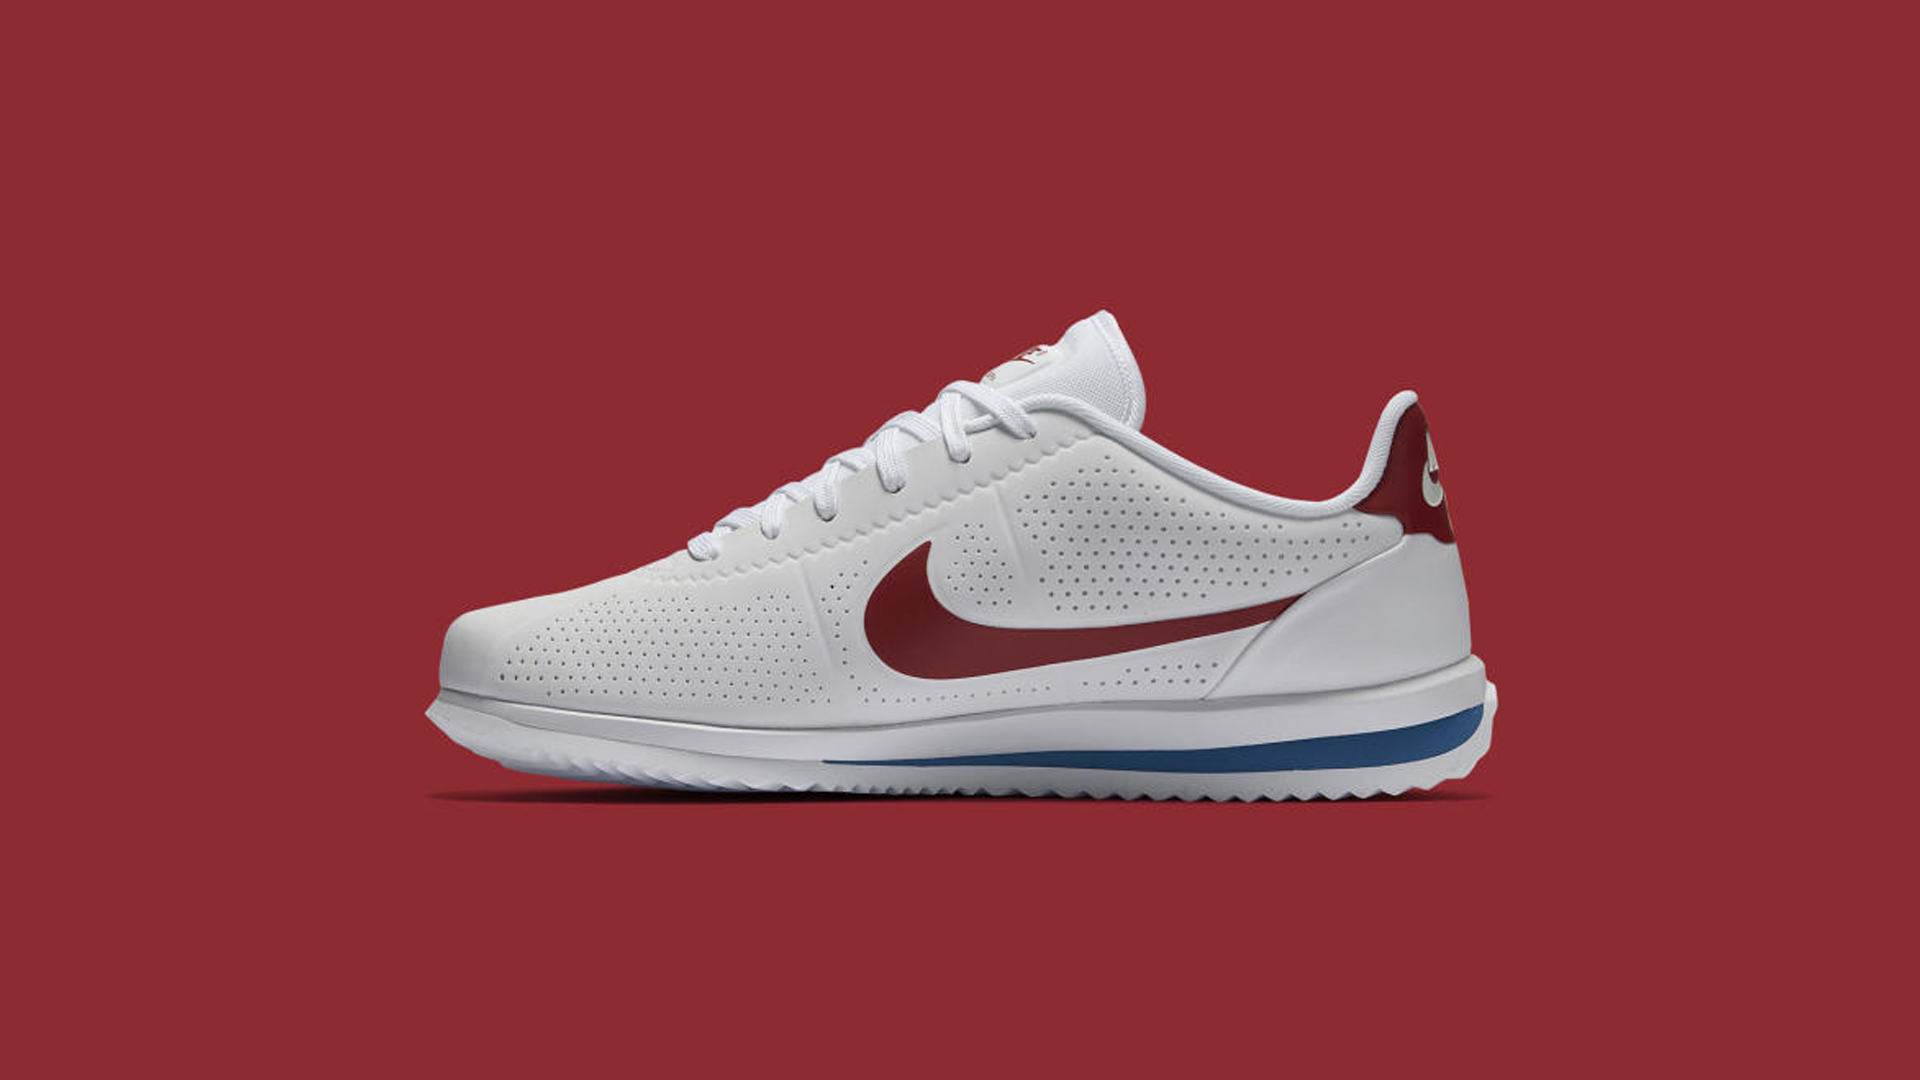 newest 7db67 4708b The Nike Cortez Ultra Moire is for the Modern Day Forrest ...